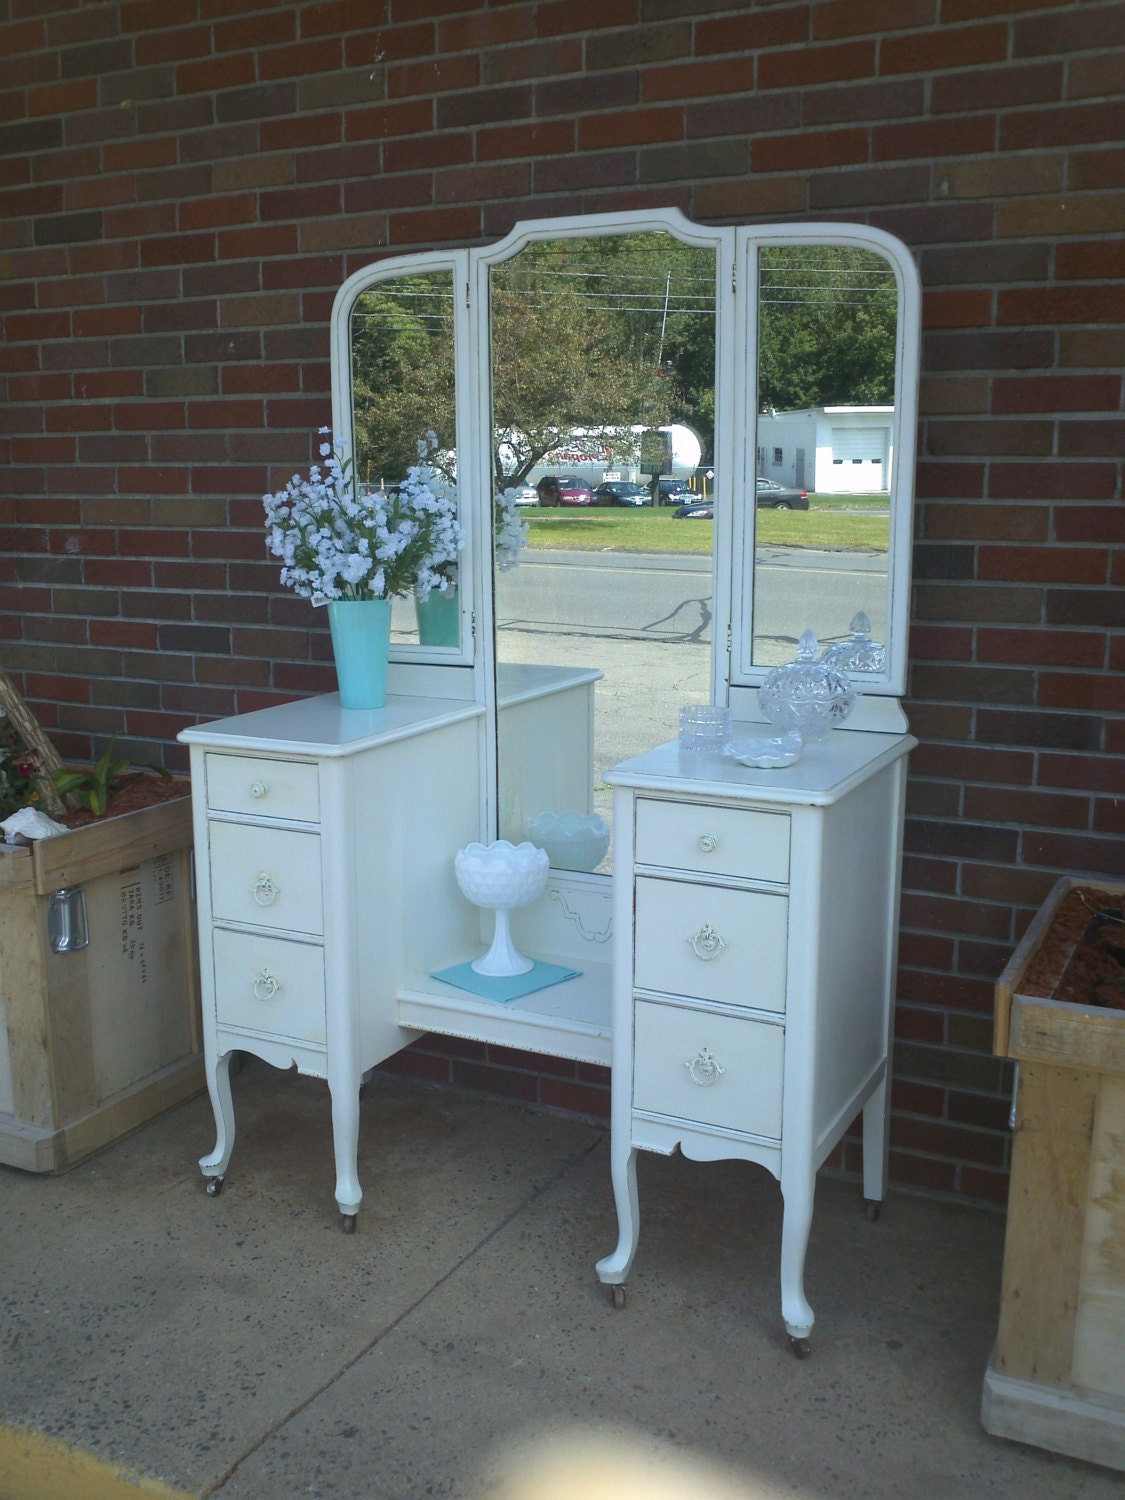 🔎zoom - Circa 20's Antique White Vanity Dressing Table Salvaged